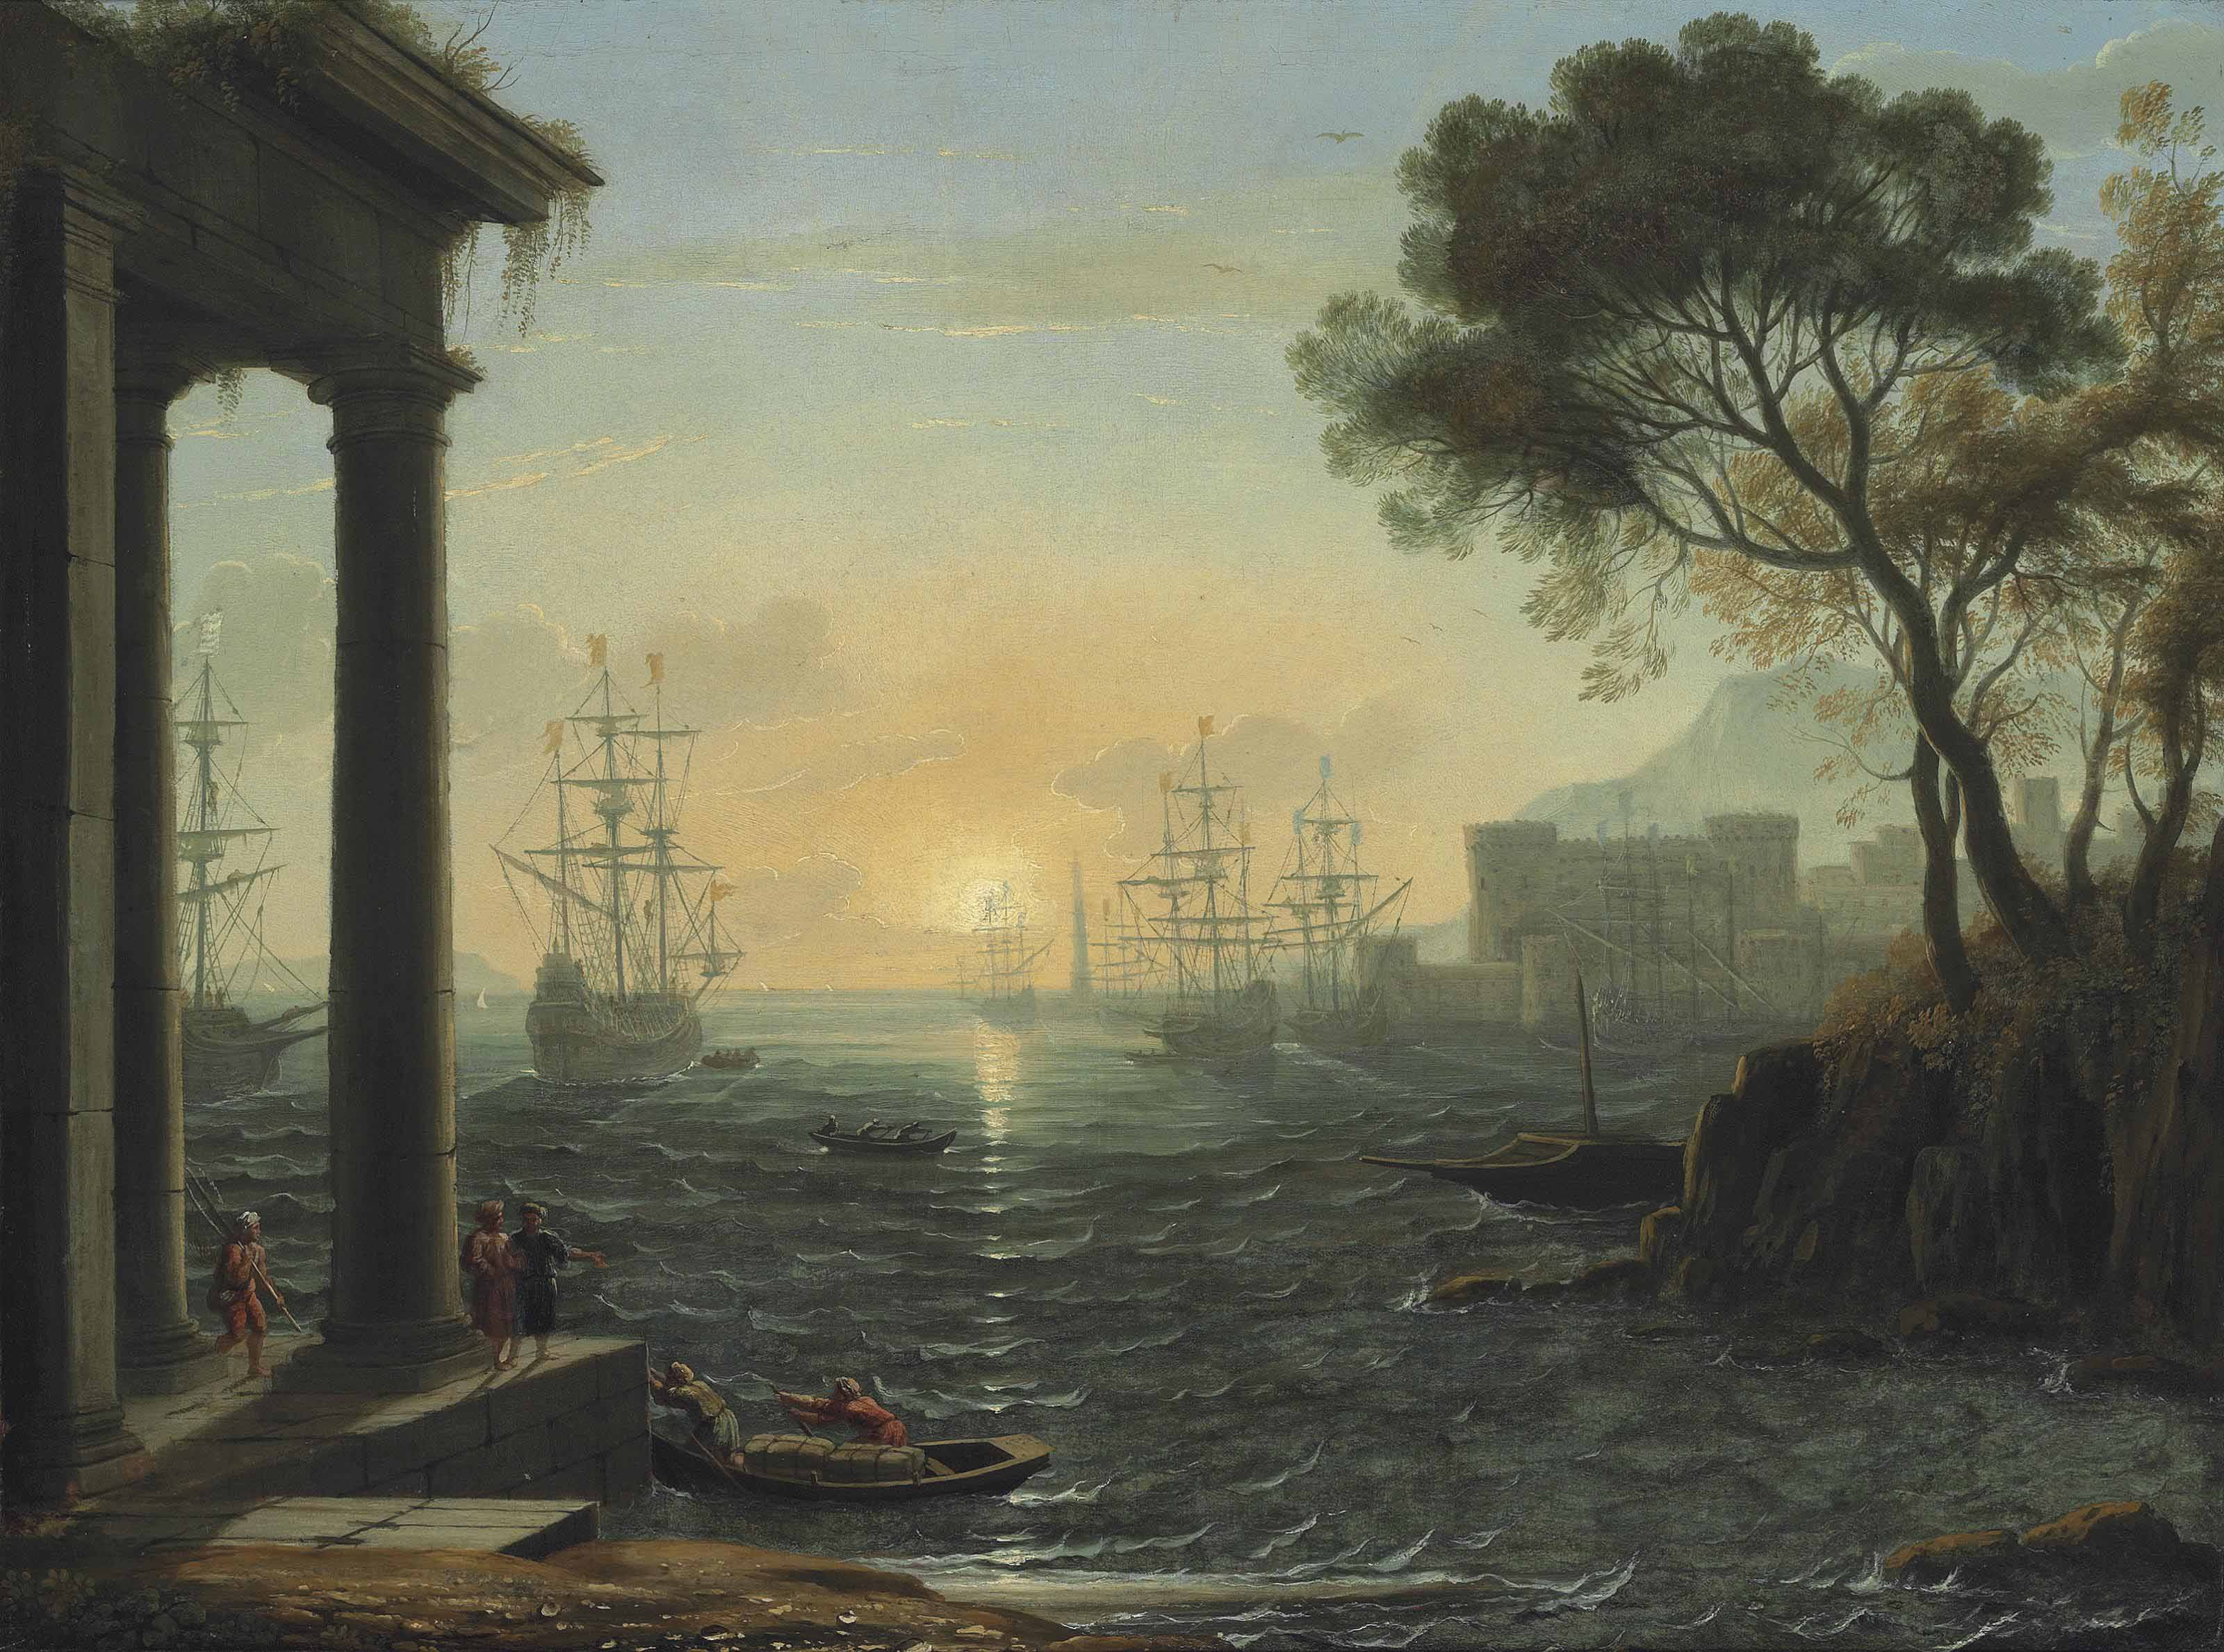 A Mediterranean port at sunset